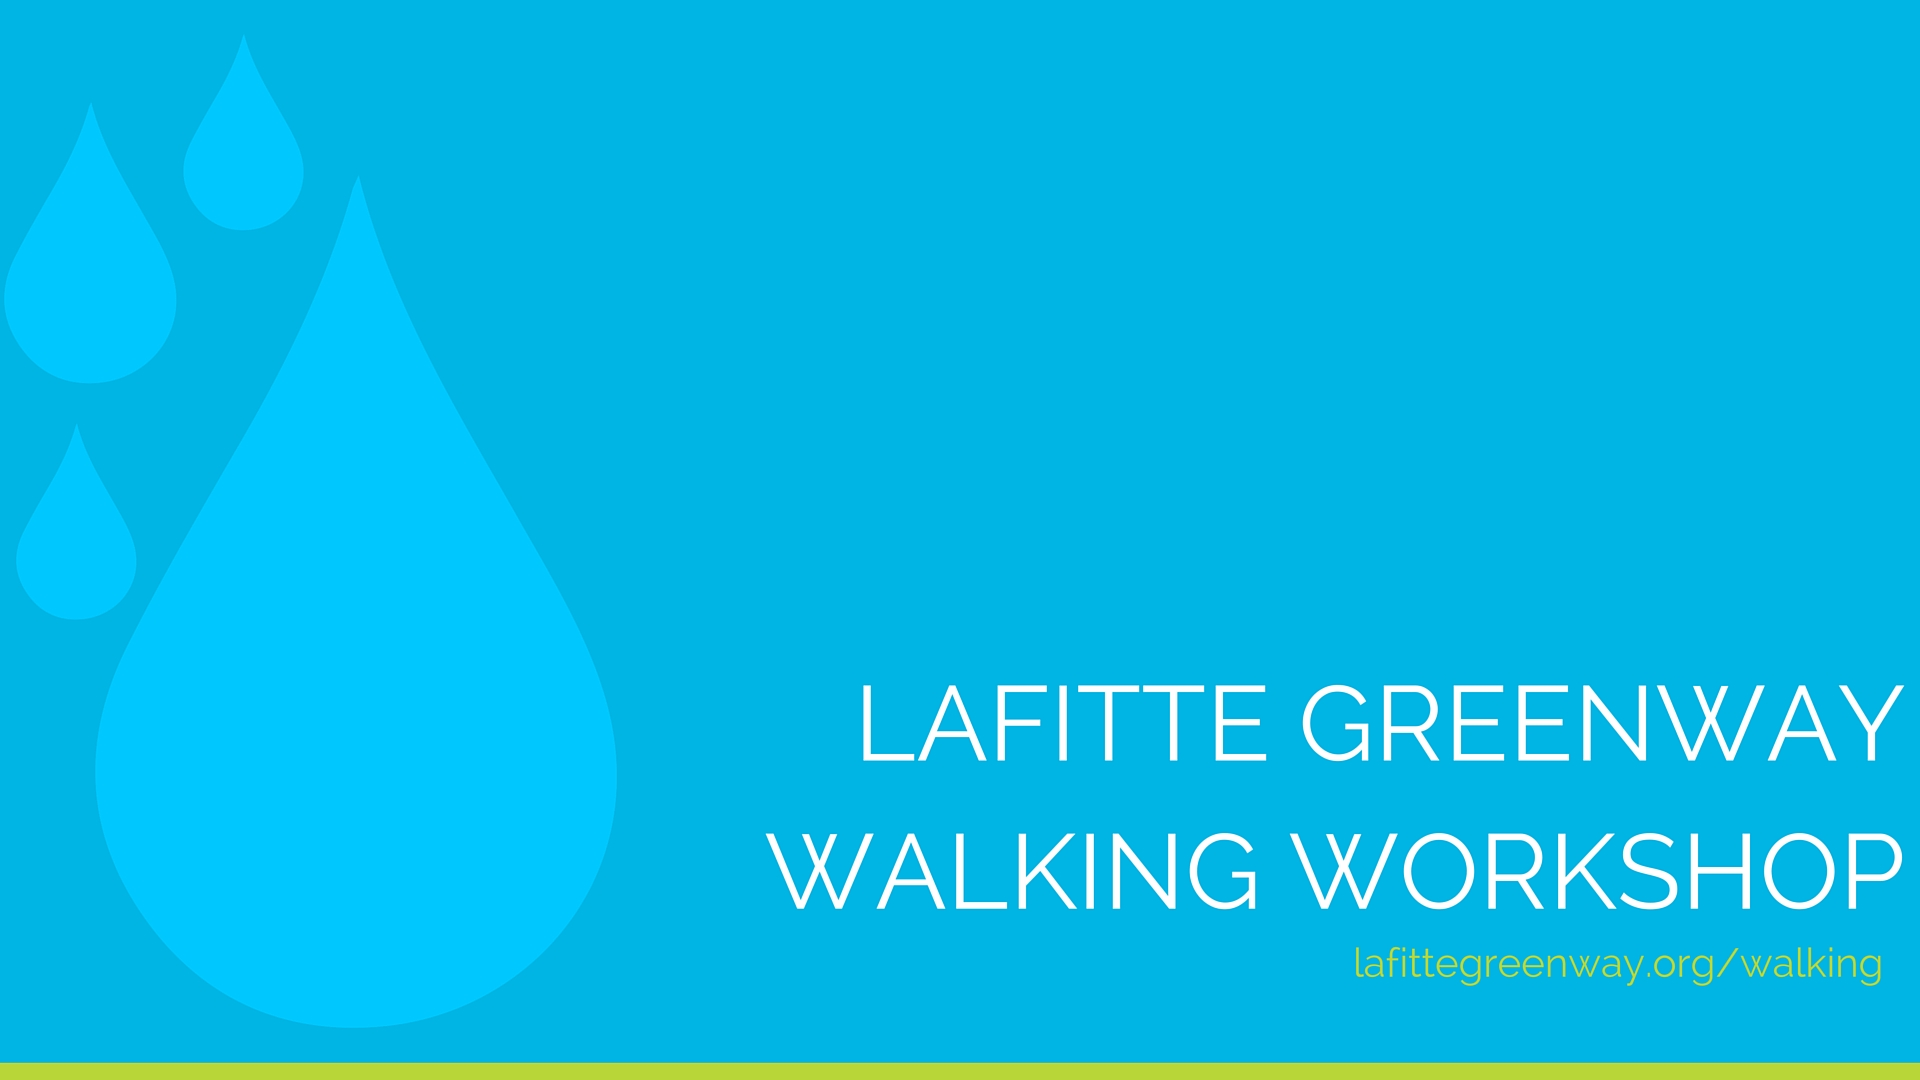 Lafitte_Greenway_Walking_Workshop.jpg